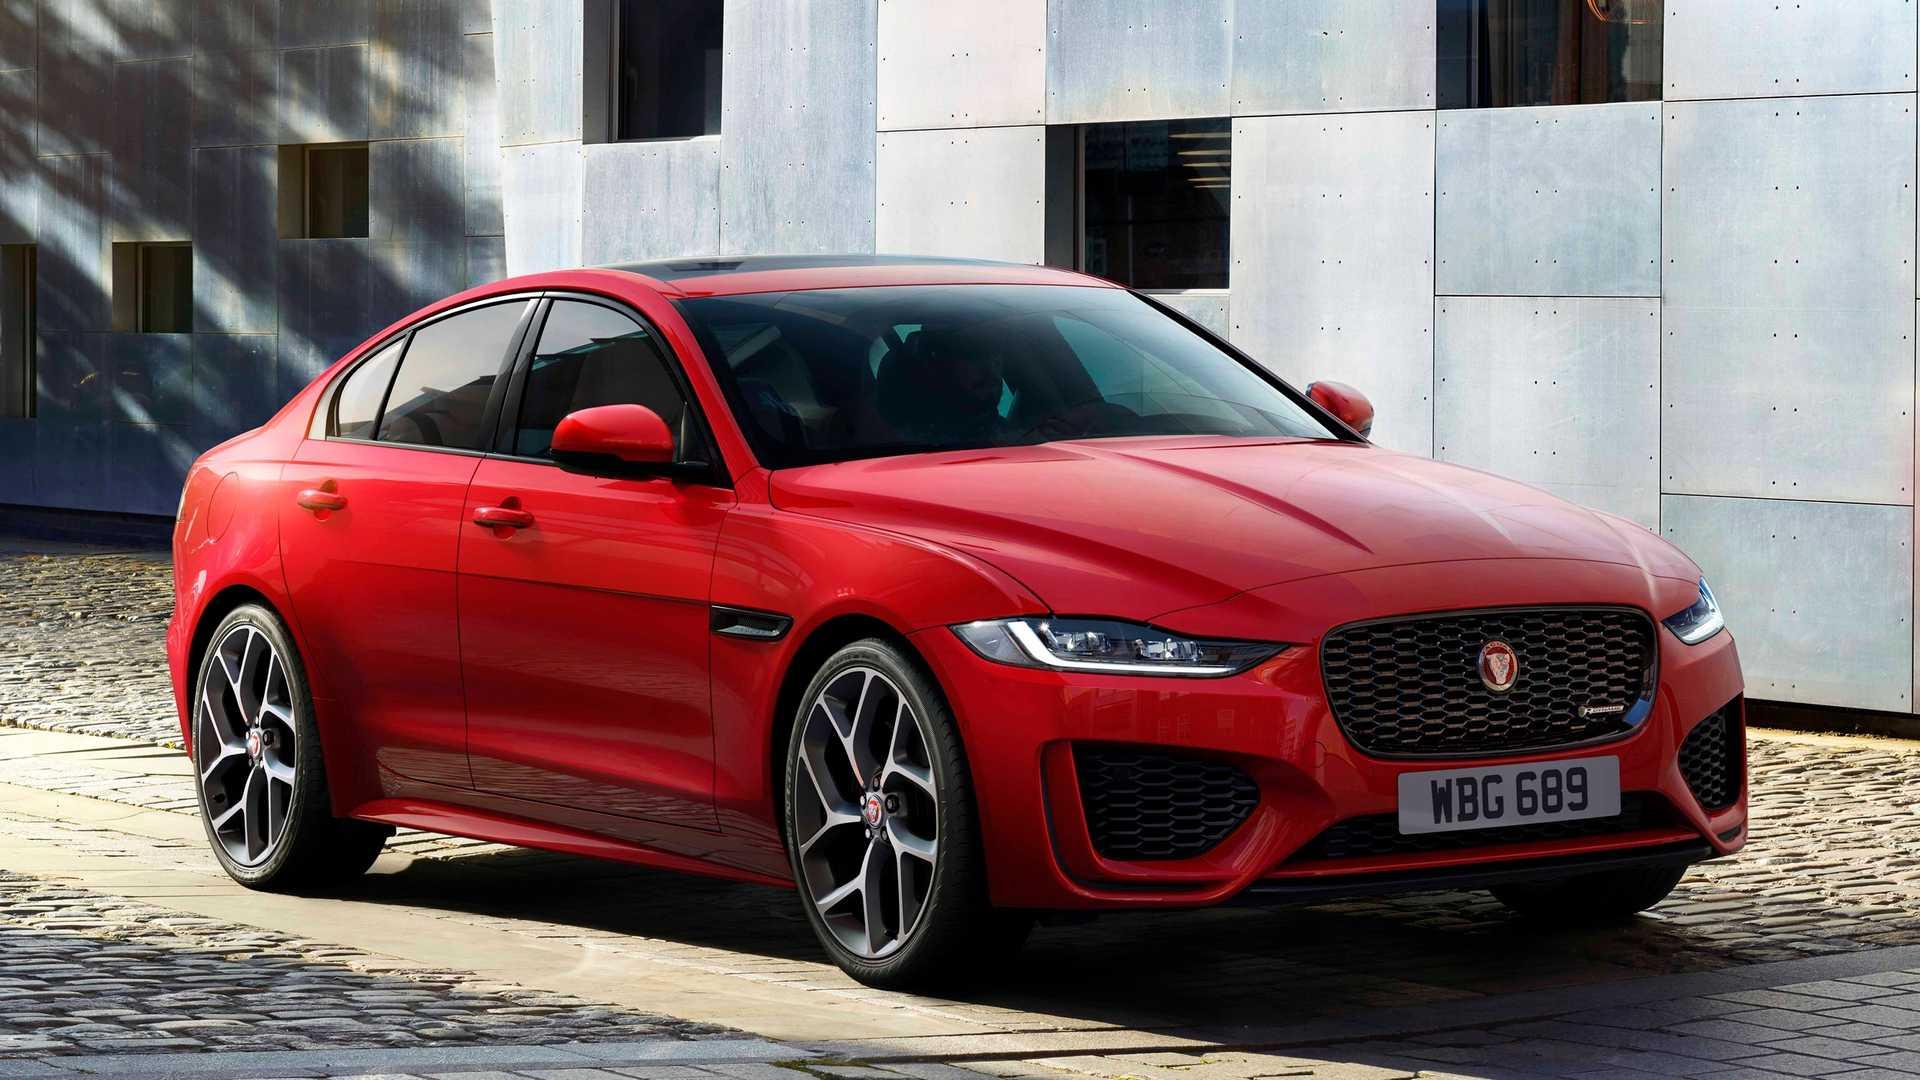 93 Gallery of 2020 Jaguar Xe Build Overview for 2020 Jaguar Xe Build